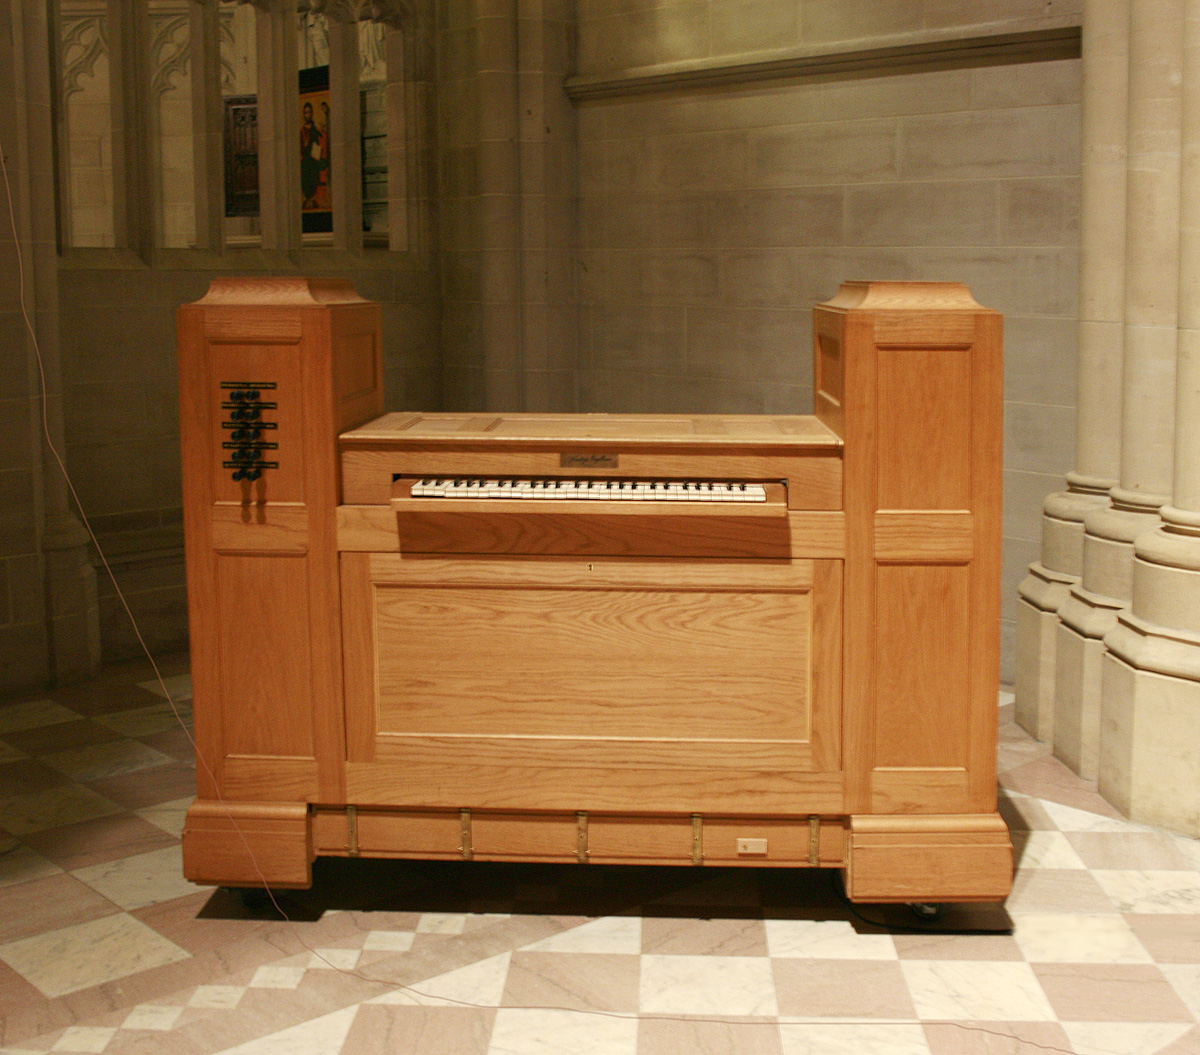 "Flentrop Orgelbouw ""Kistorgel"" (1993) at the Cathedral of St. John the Divine - New York City (photo: Steven E. Lawson)"